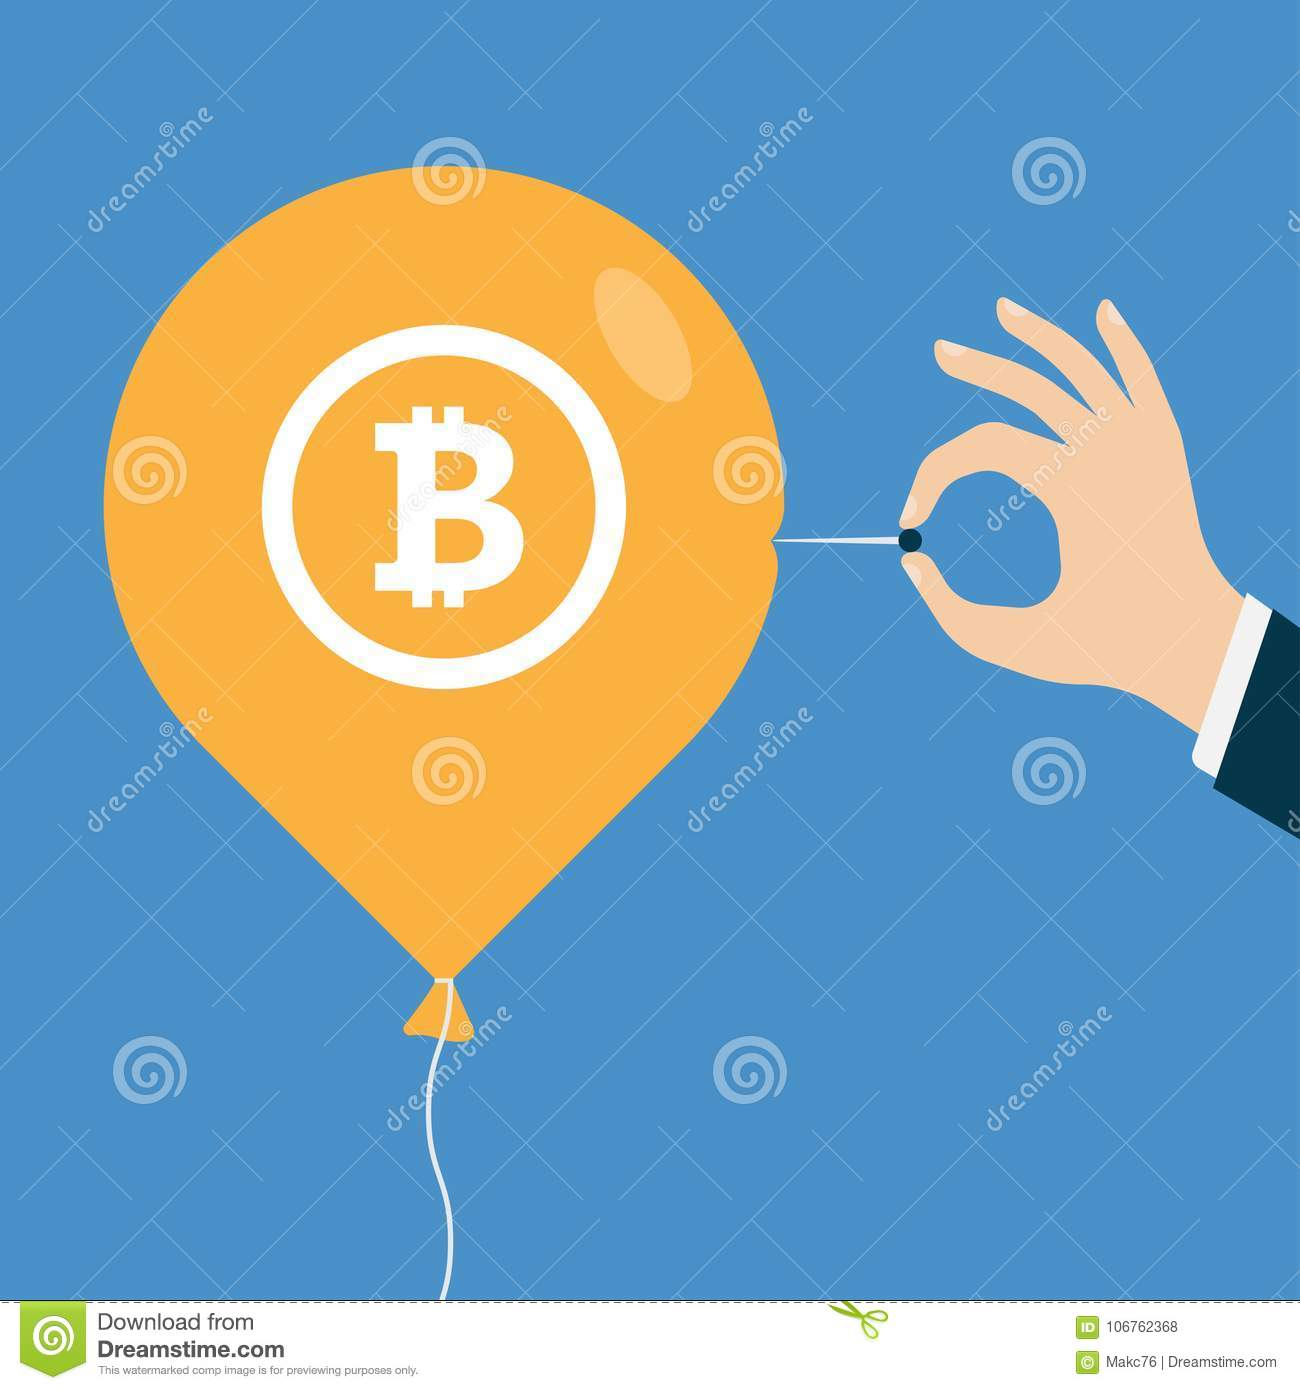 Bitcoin bubble burst or decline of the bitcoin currency